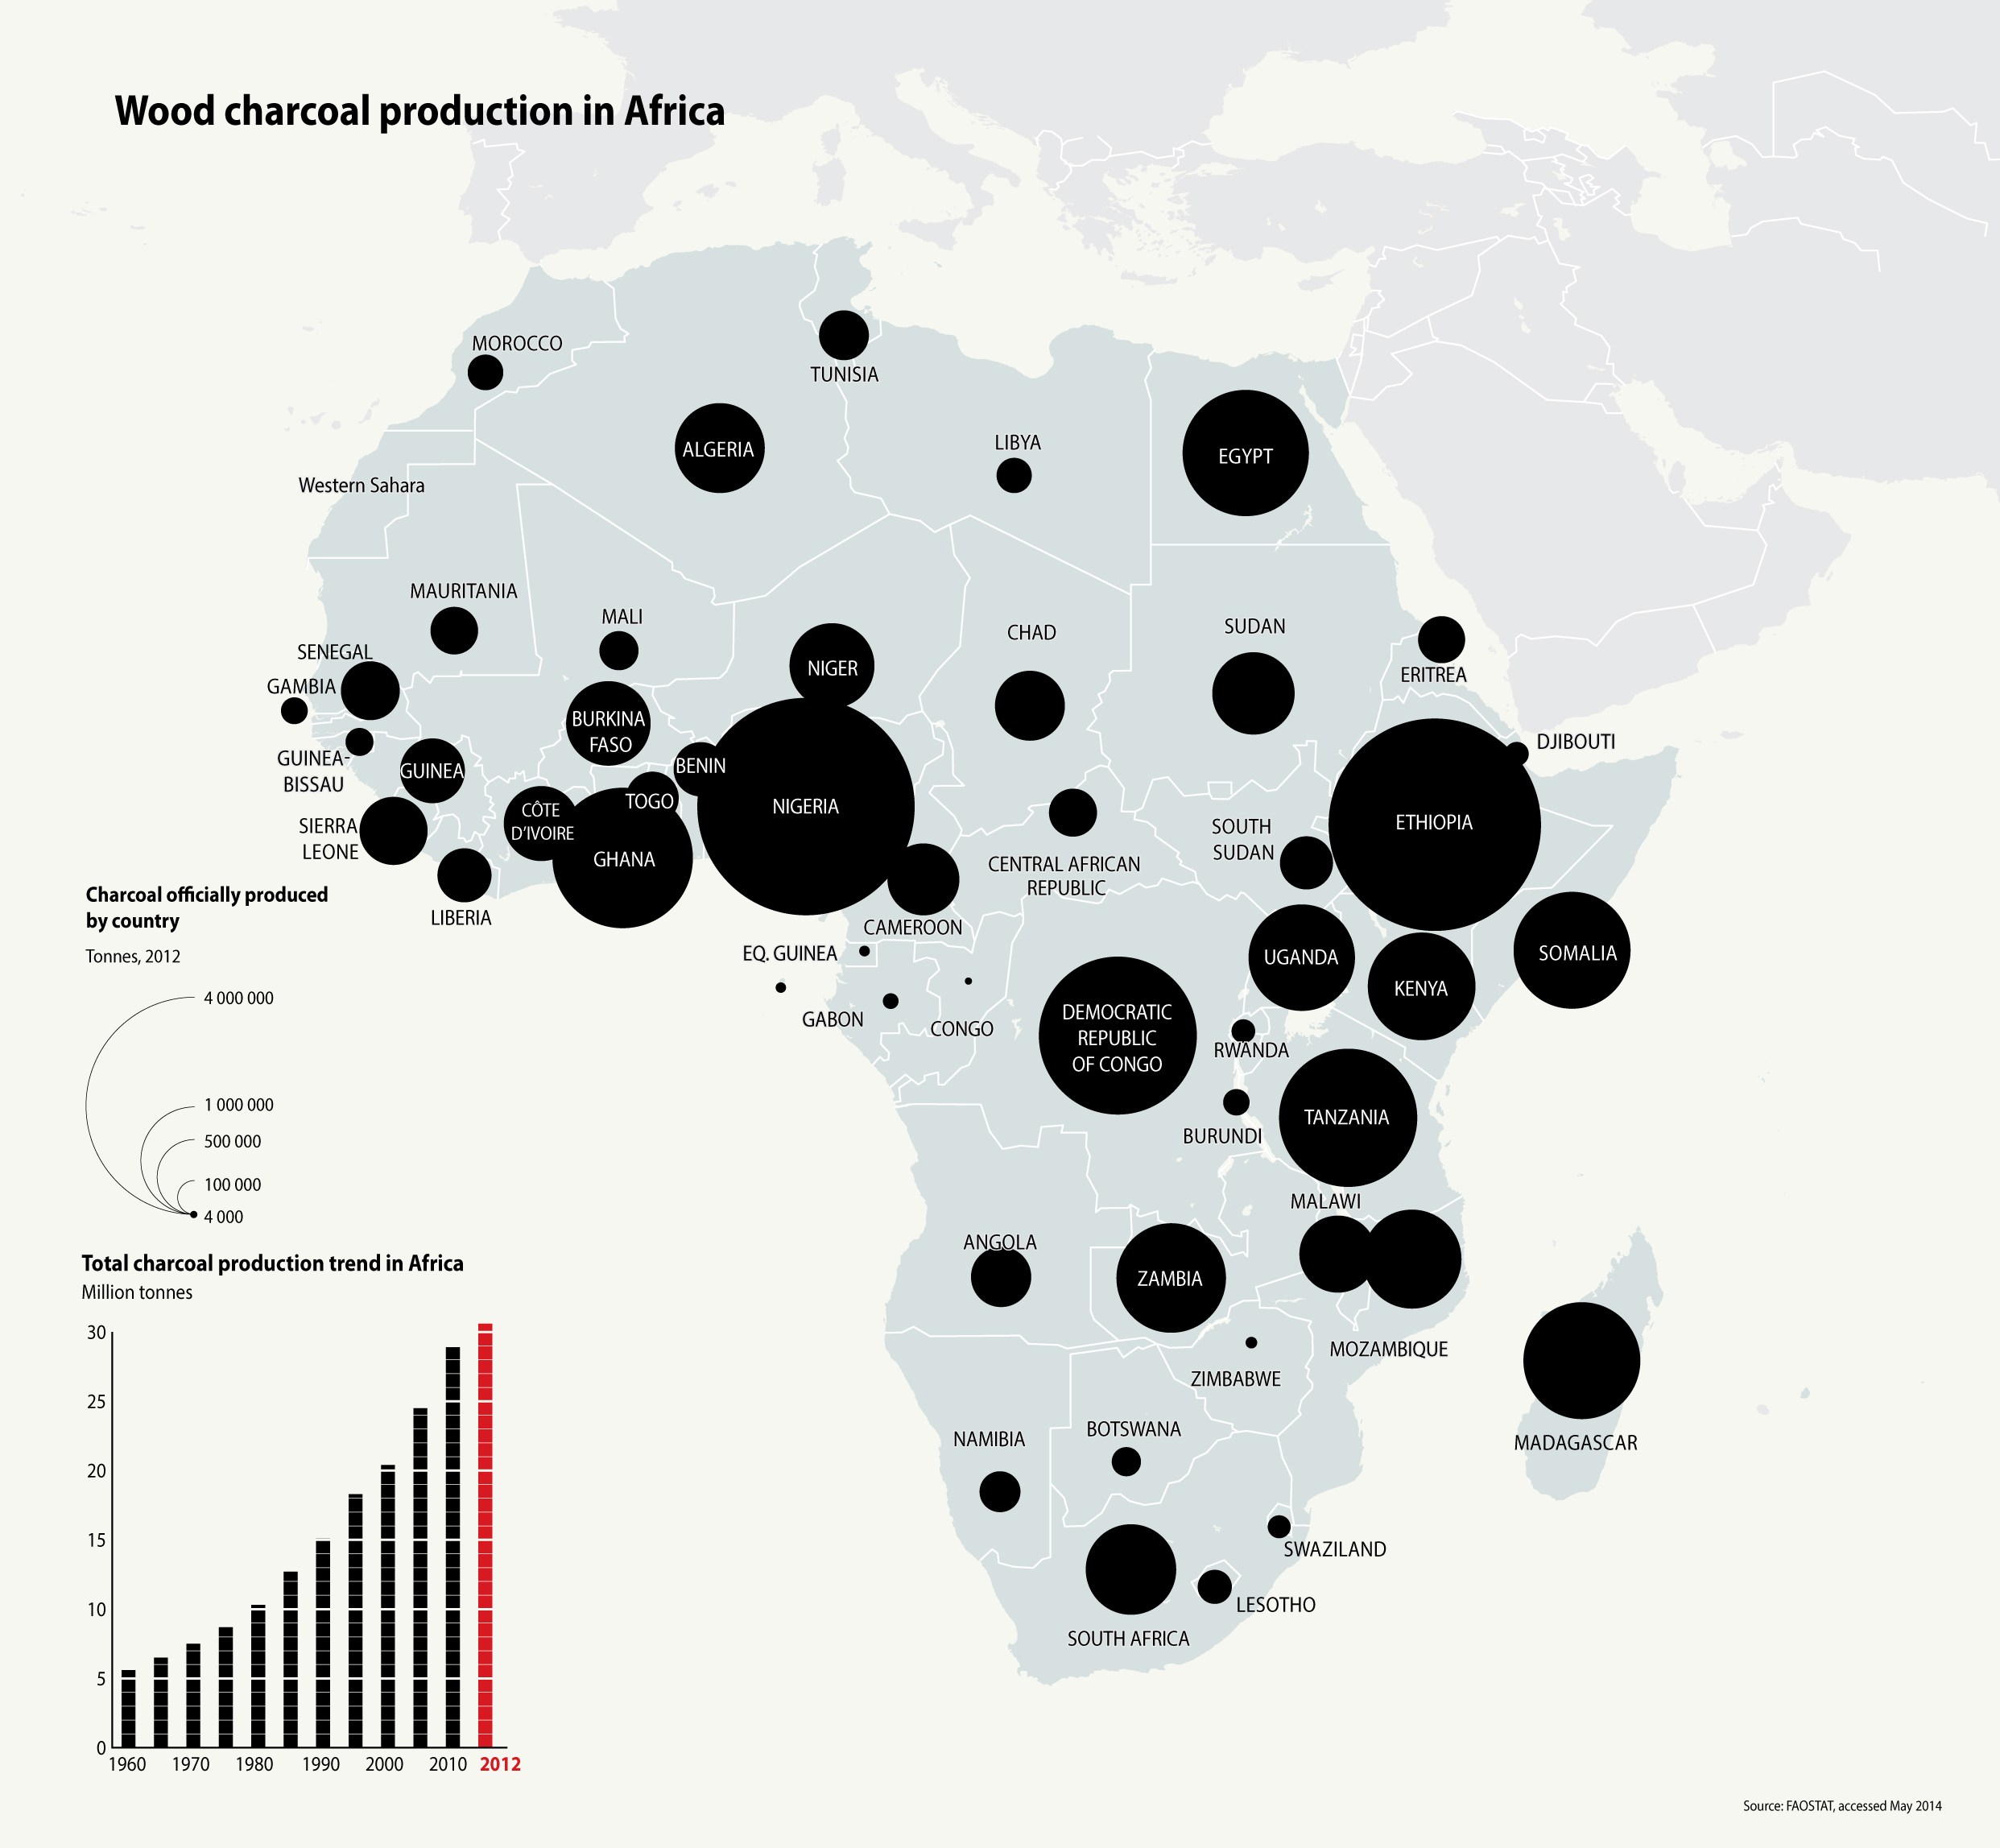 Charcoal production in Africa